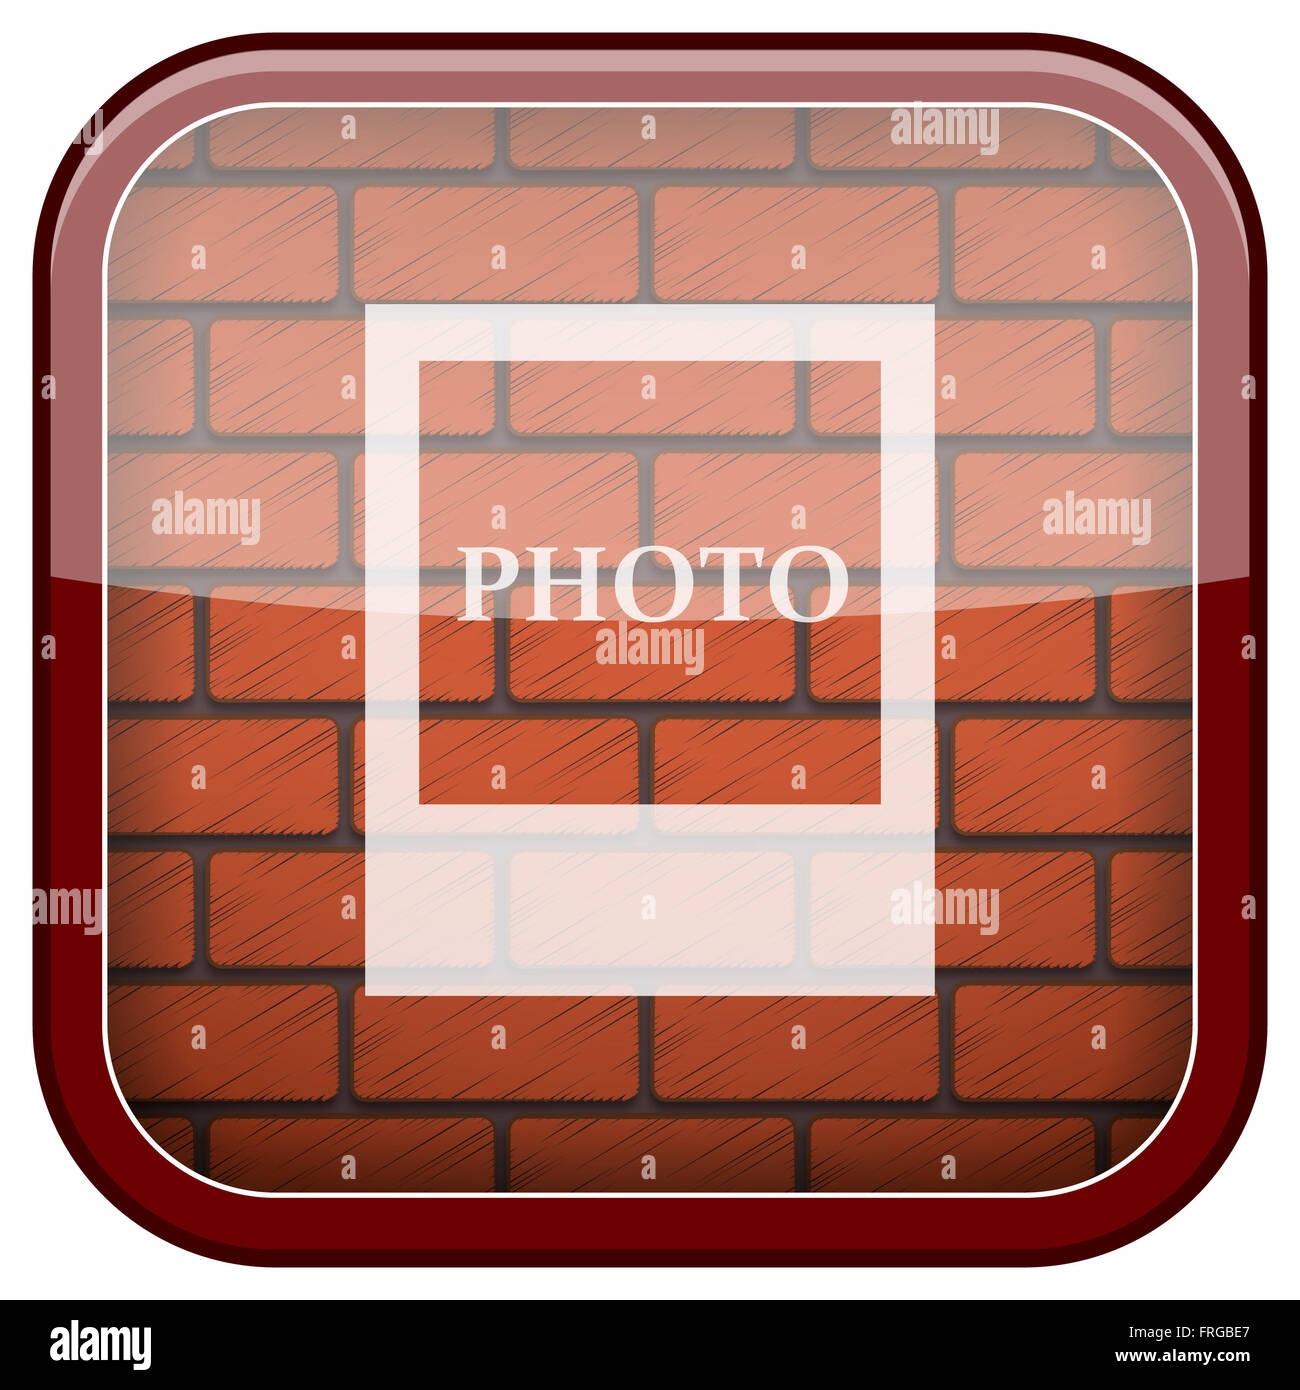 Square shiny icon with white design on bricks wall background - Stock Image